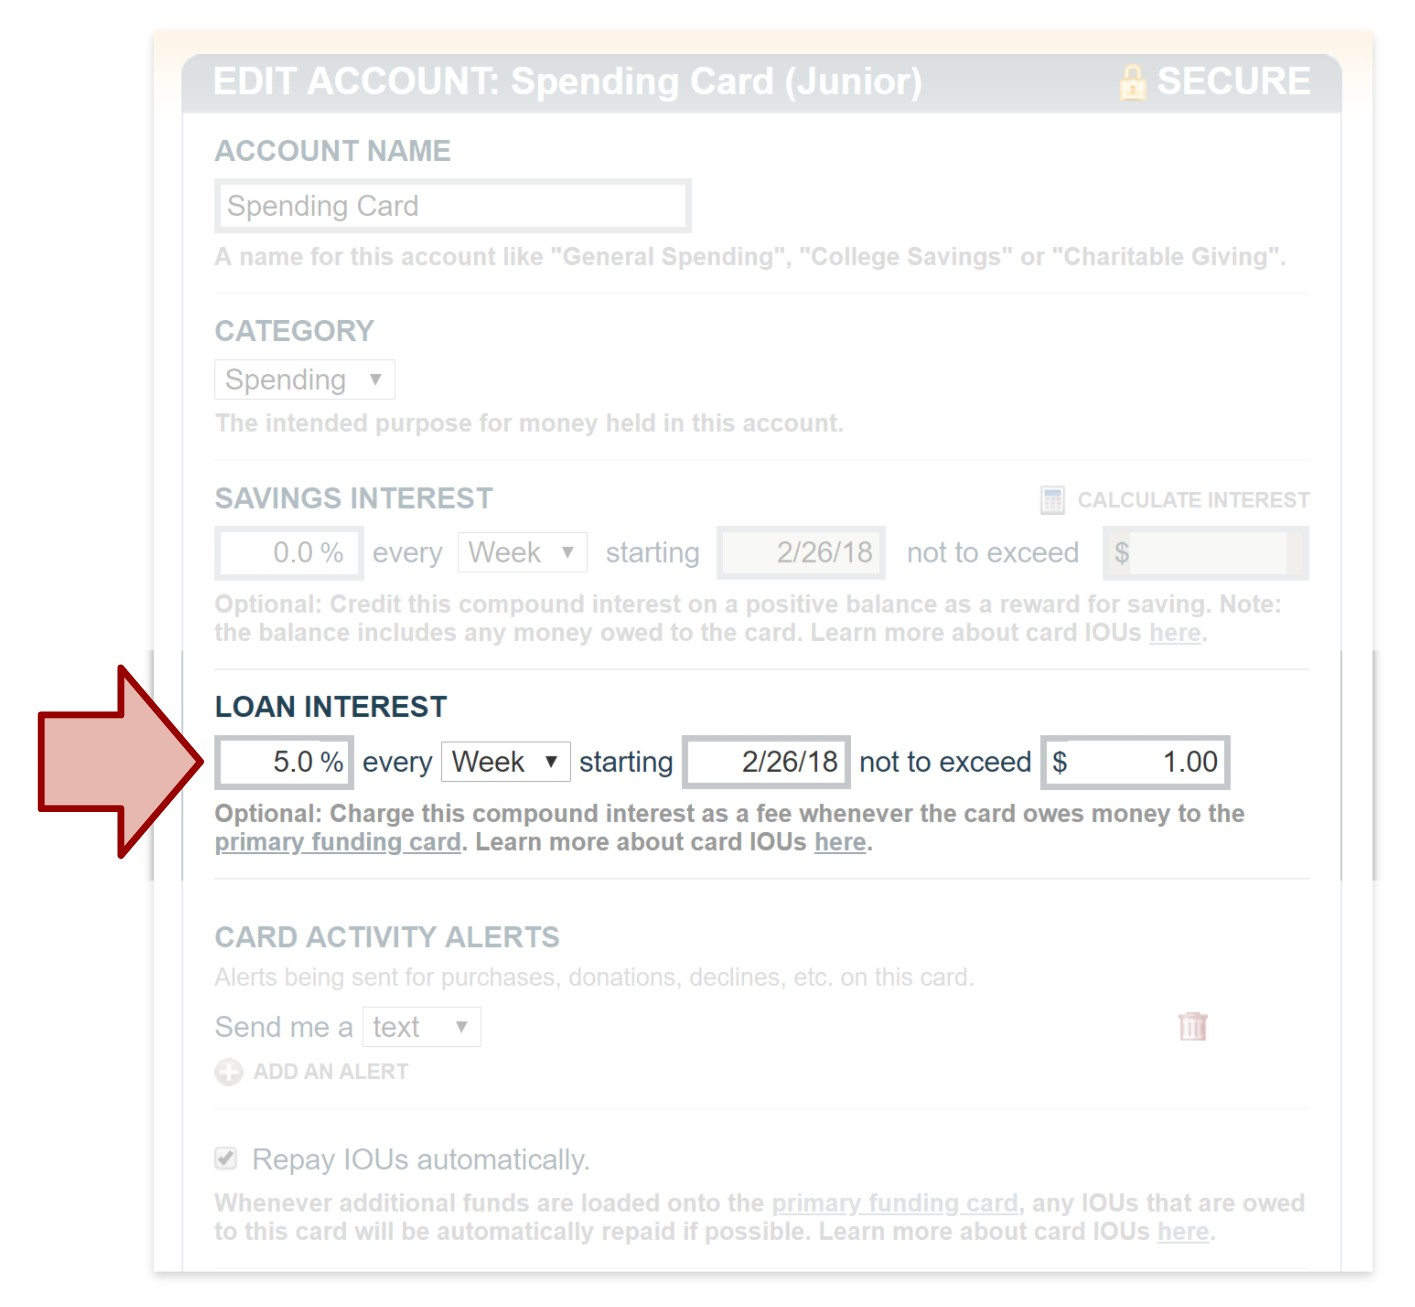 FamZoo Card Loan Interest Settings